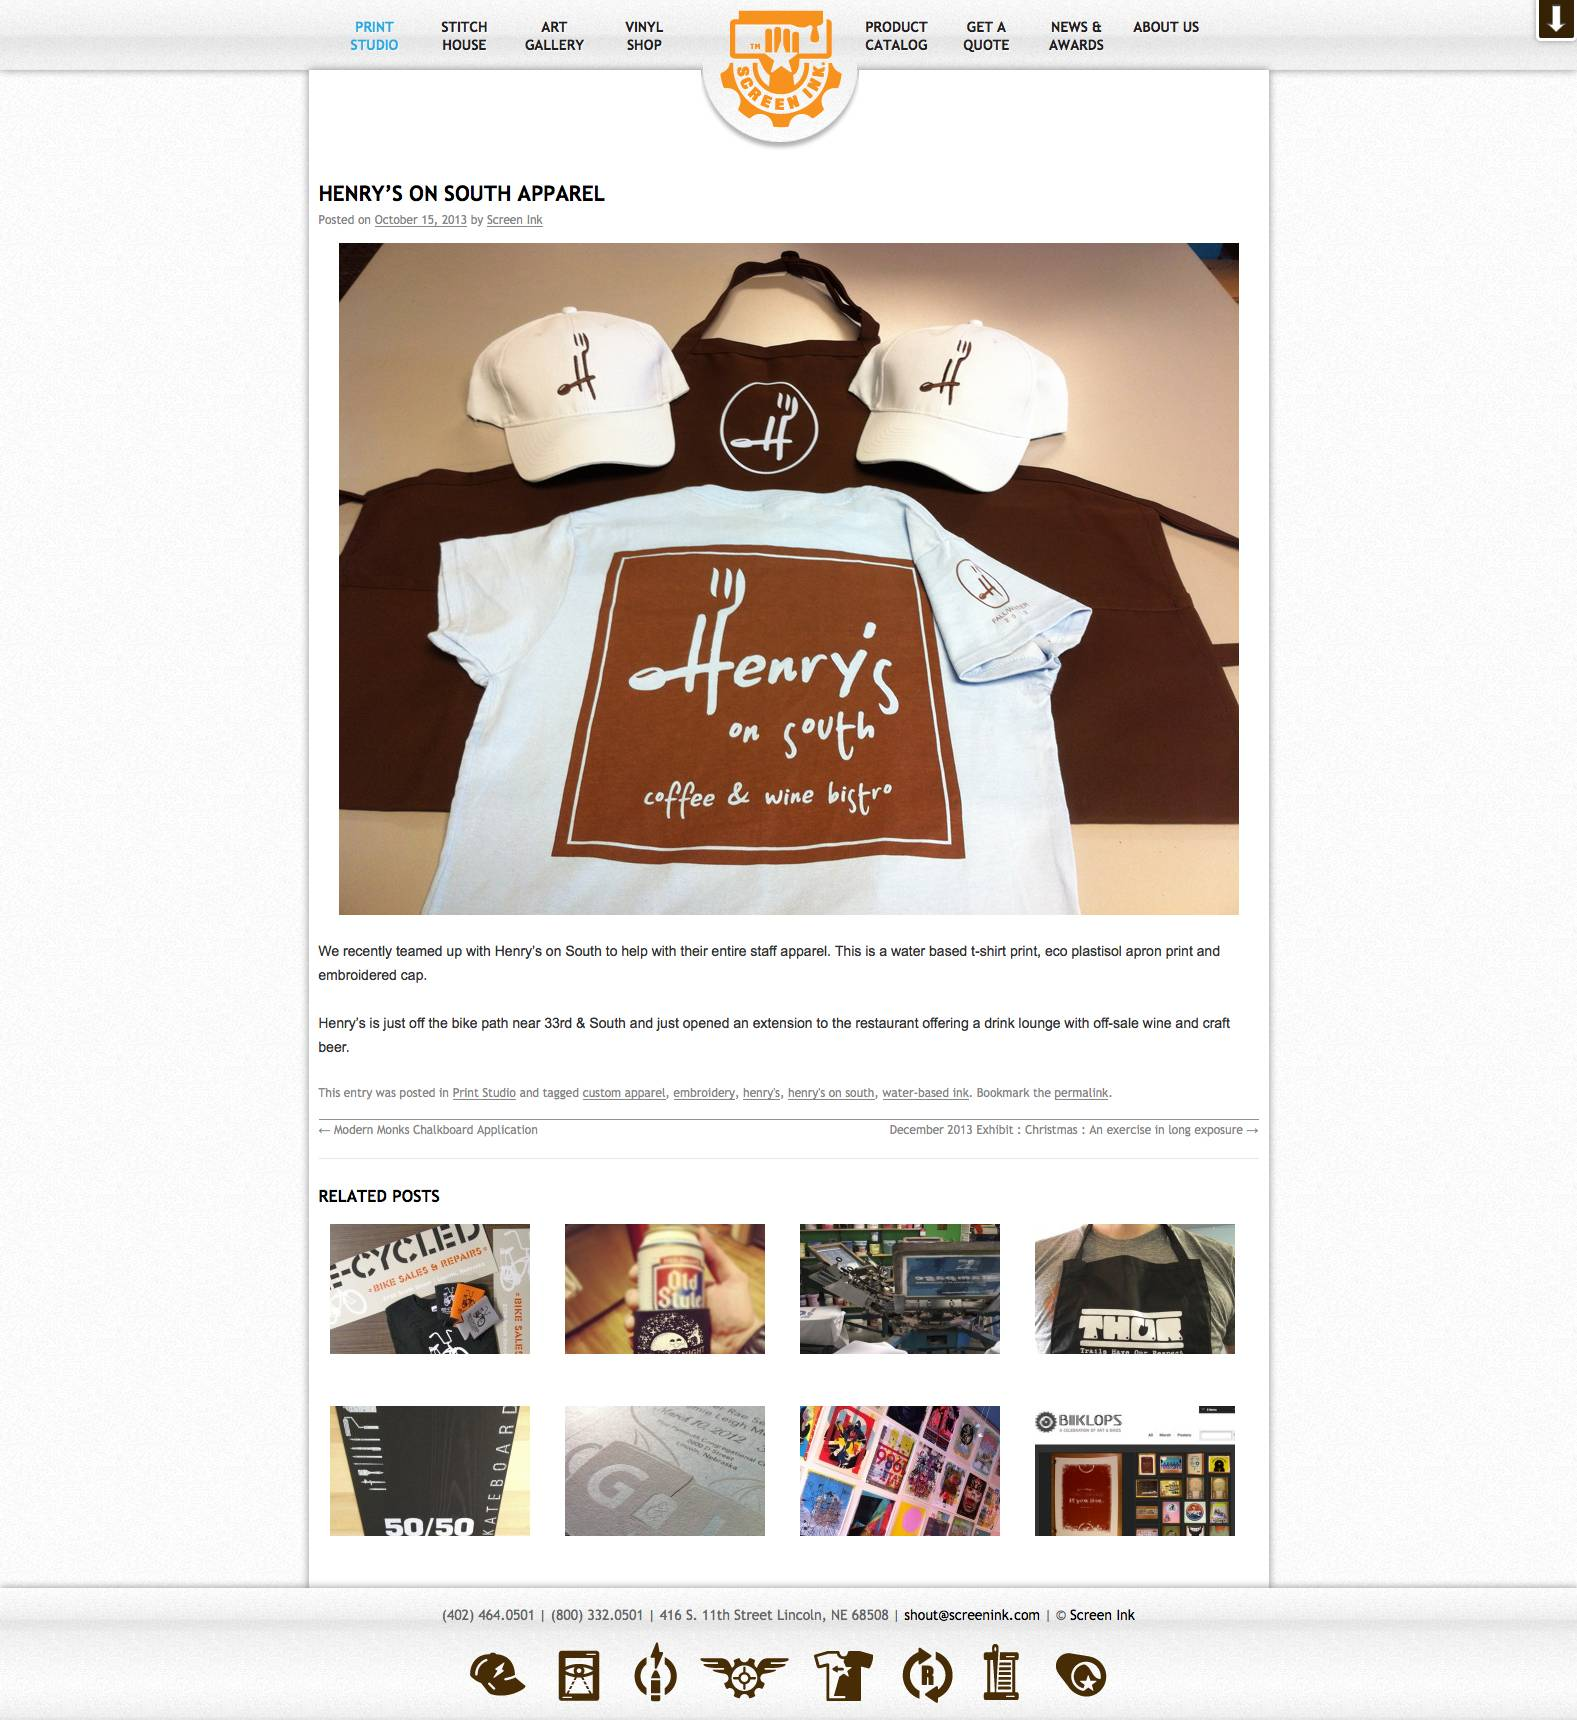 Screen_Ink_Henry's_on_South_apparel_-_2014-10-29_11.05.18